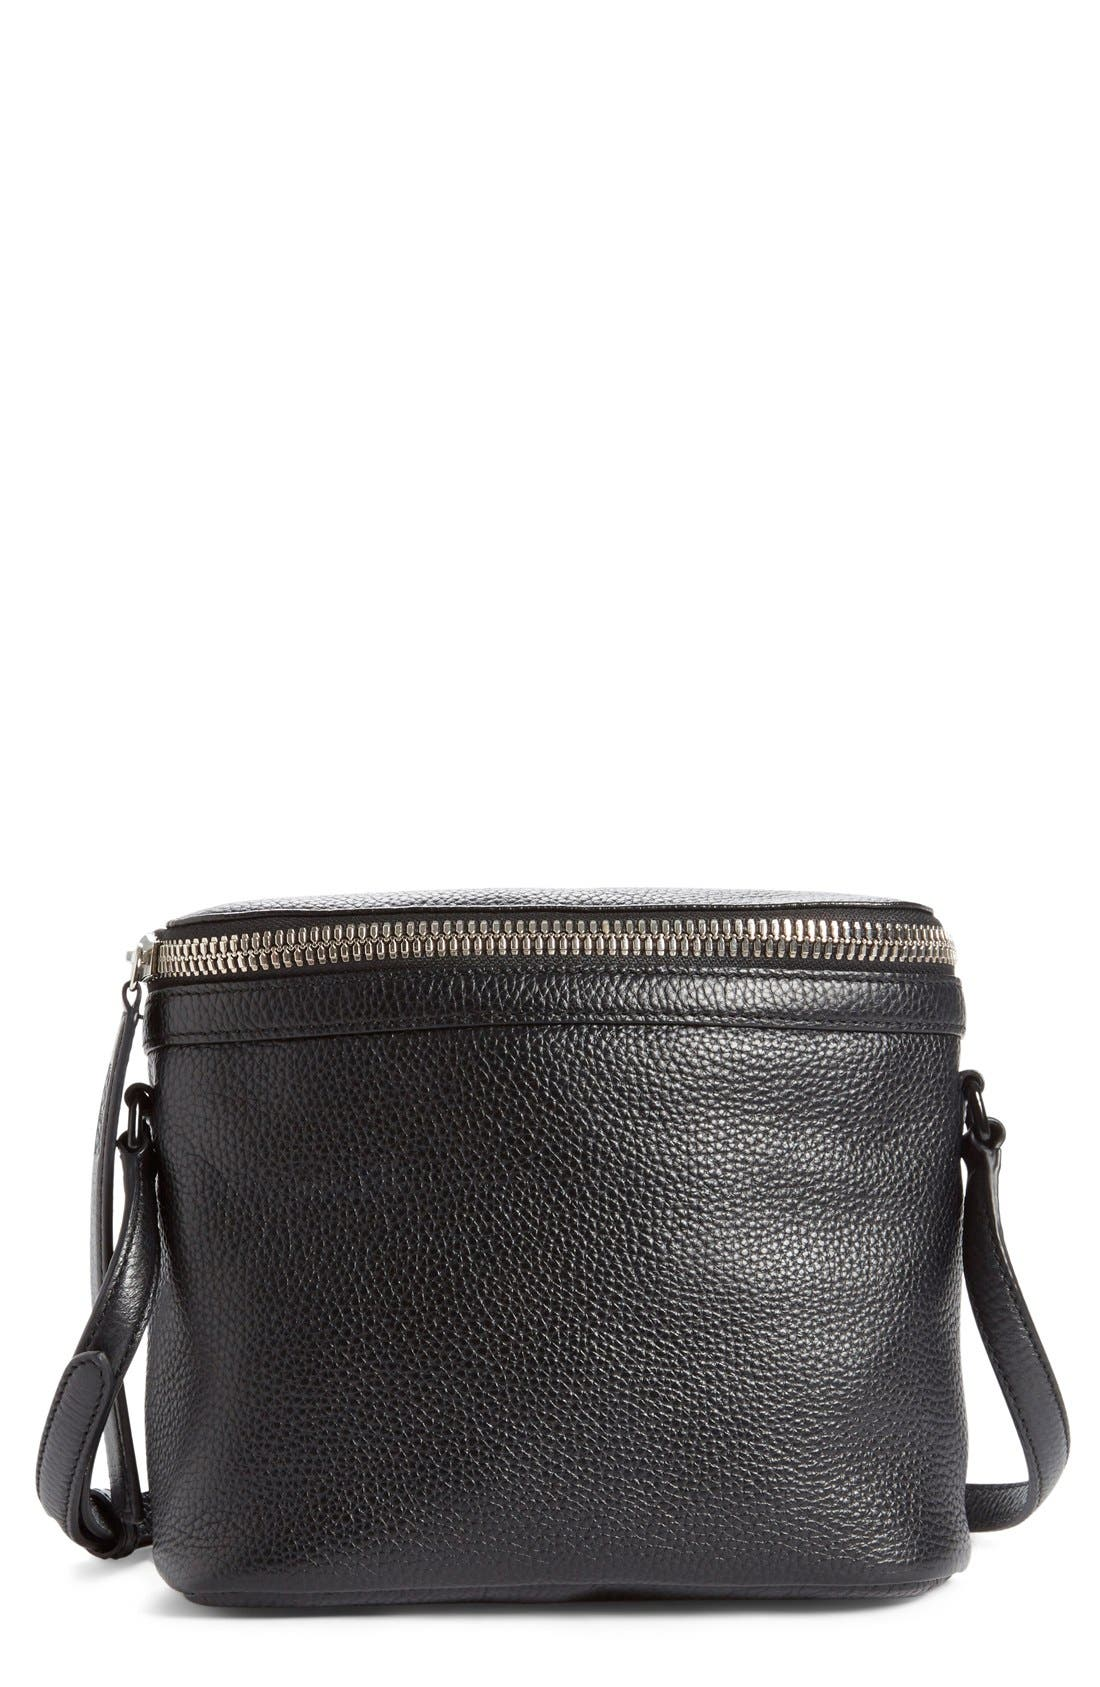 KARA Large Stowaway Leather Crossbody Bag